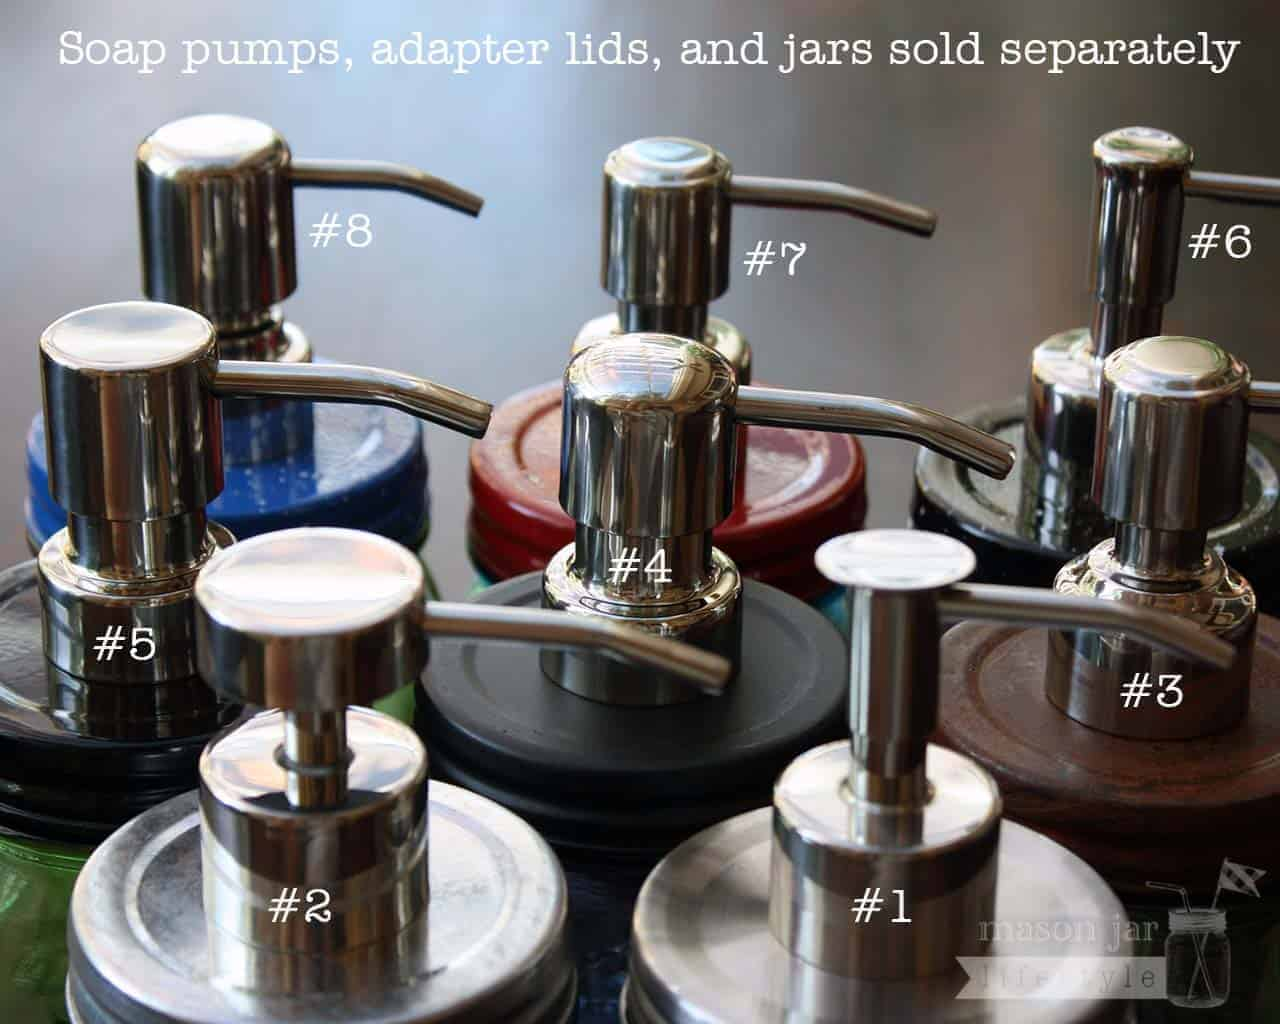 8 styles of mirror chrome finish stainless steel soap pump dispensers on ball mason jars - Soap Dispenser Pumps